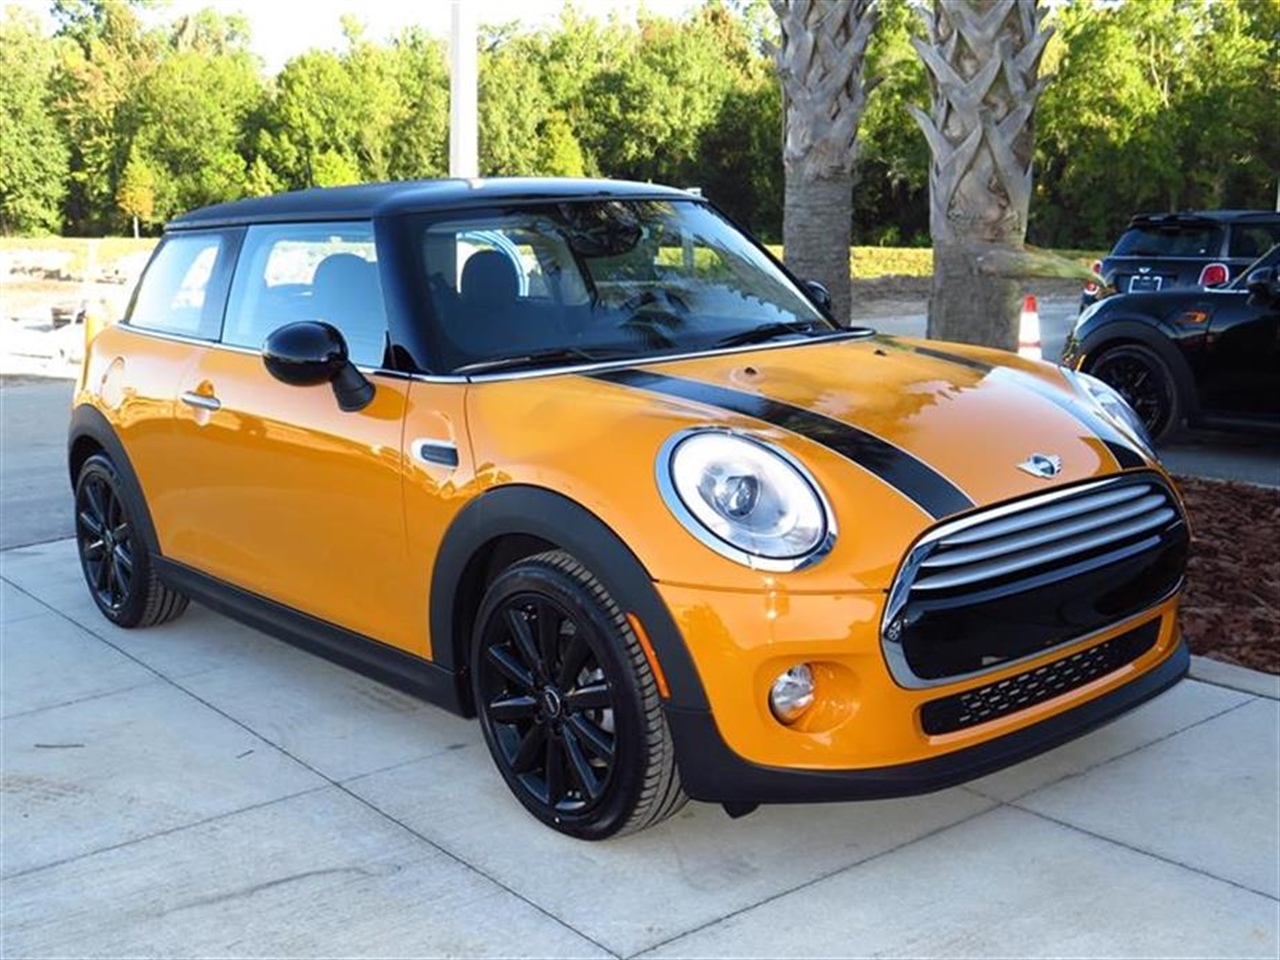 2015 MINI COOPER HARDTOP 2dr Cpe 0 miles 1 12V DC Power Outlet 2 Seatback Storage Pockets 4 Pers